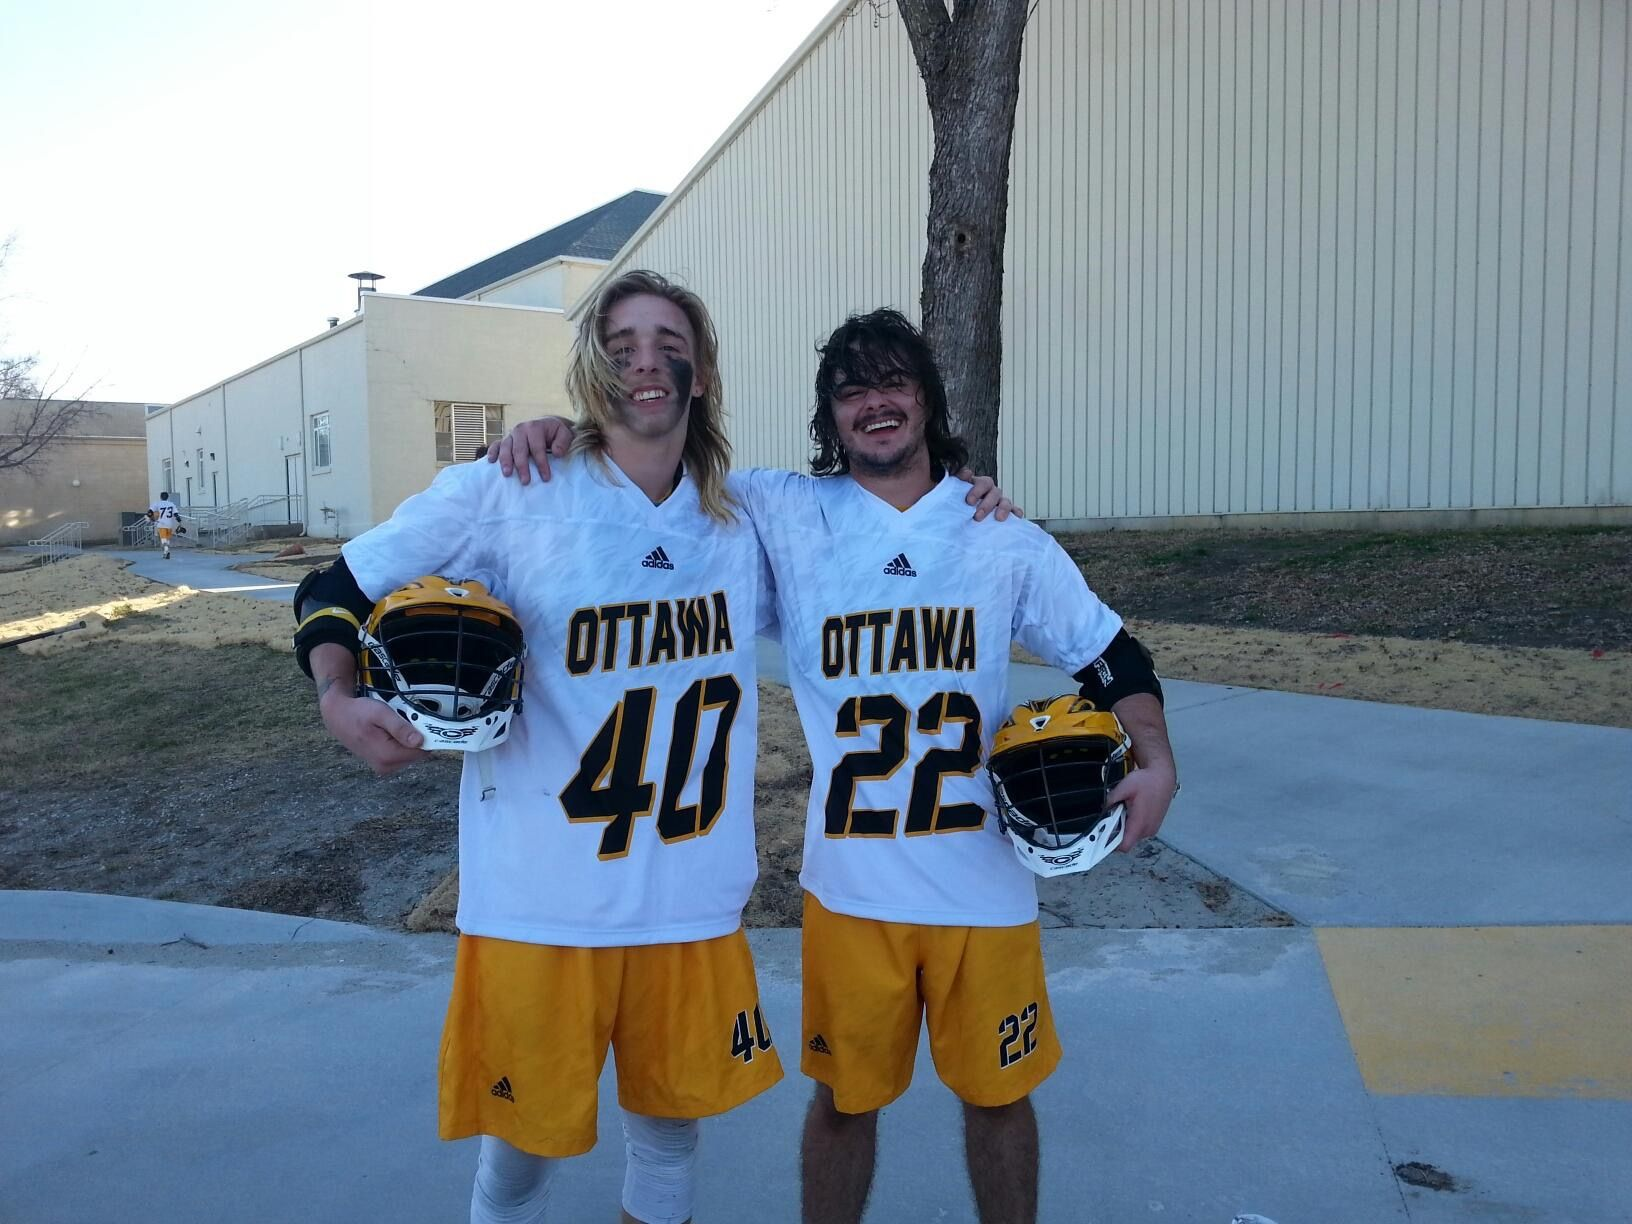 Patrick Downing Right Currently Plays Lacrosse At Ottawa